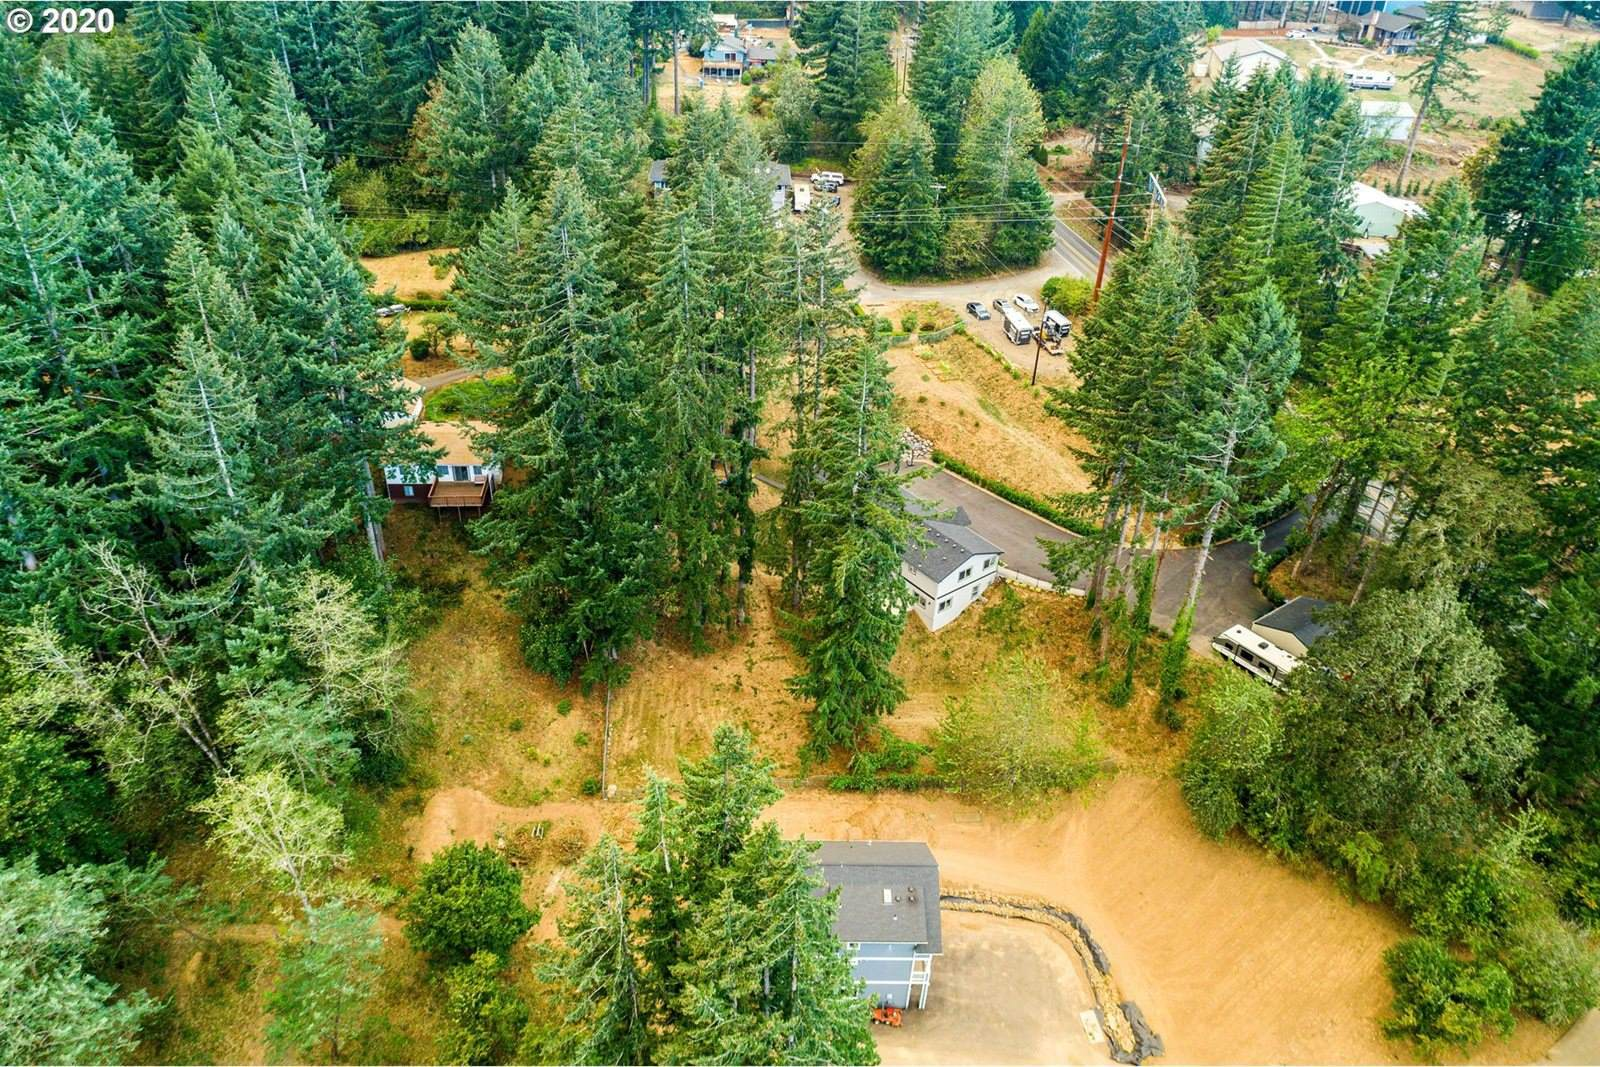 15760 South Holcomb Blvd, Oregon City, OR 97045